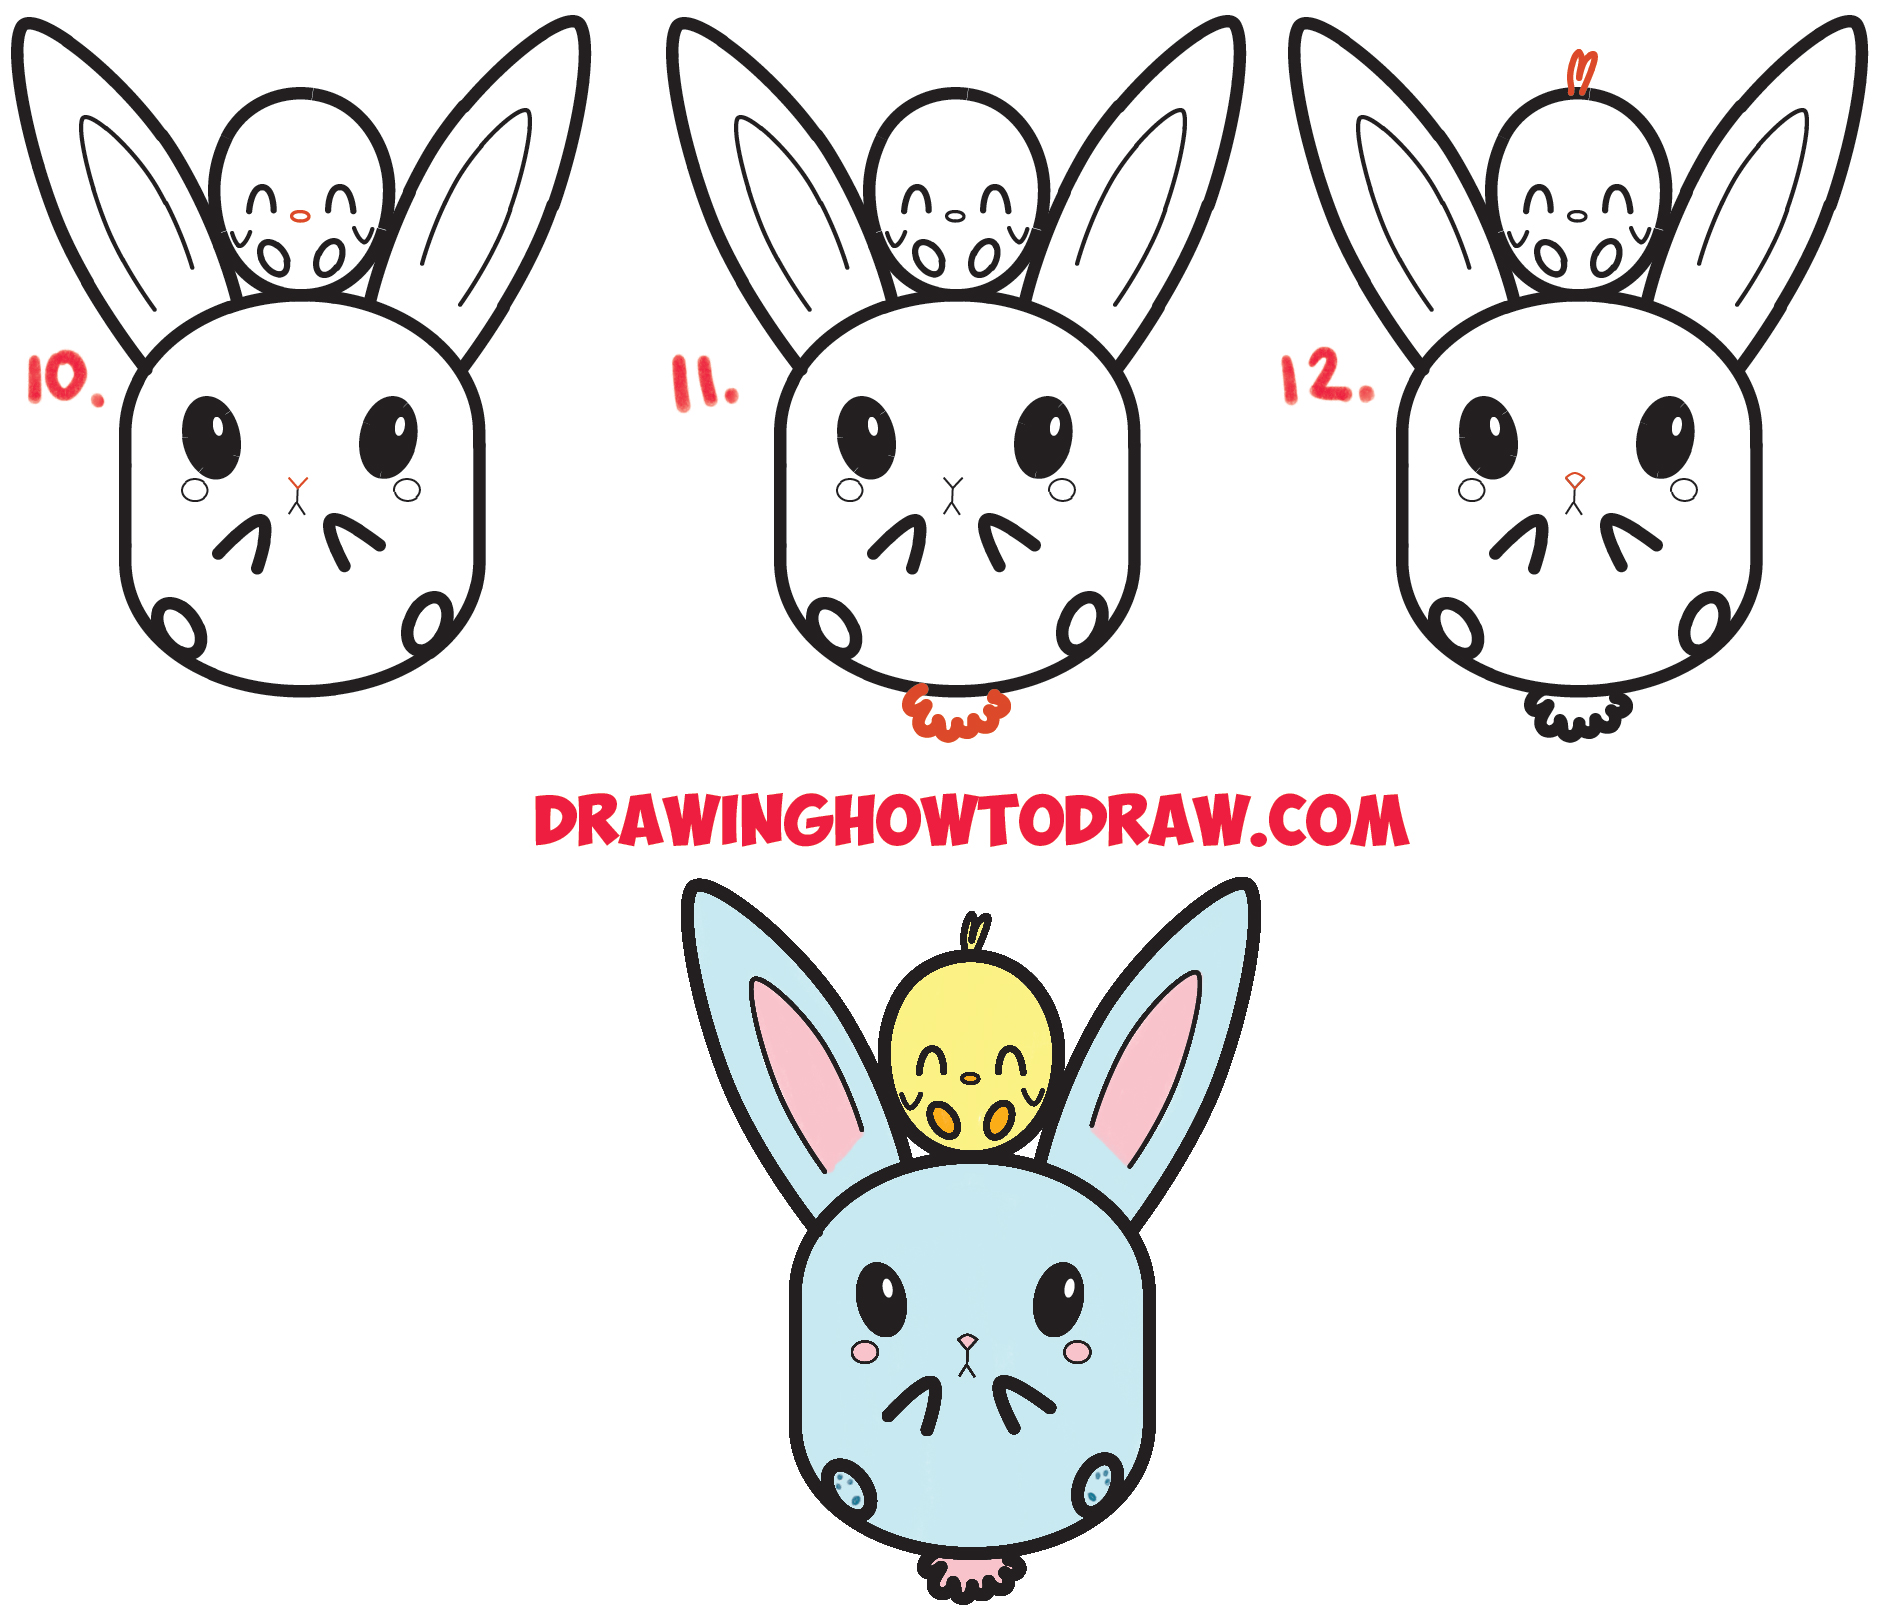 Learn How to Draw Cute Kawaii / Chibi Bunny Rabbit and Baby Chick Simple Steps Drawing Lesson for Children for Easter and Spring